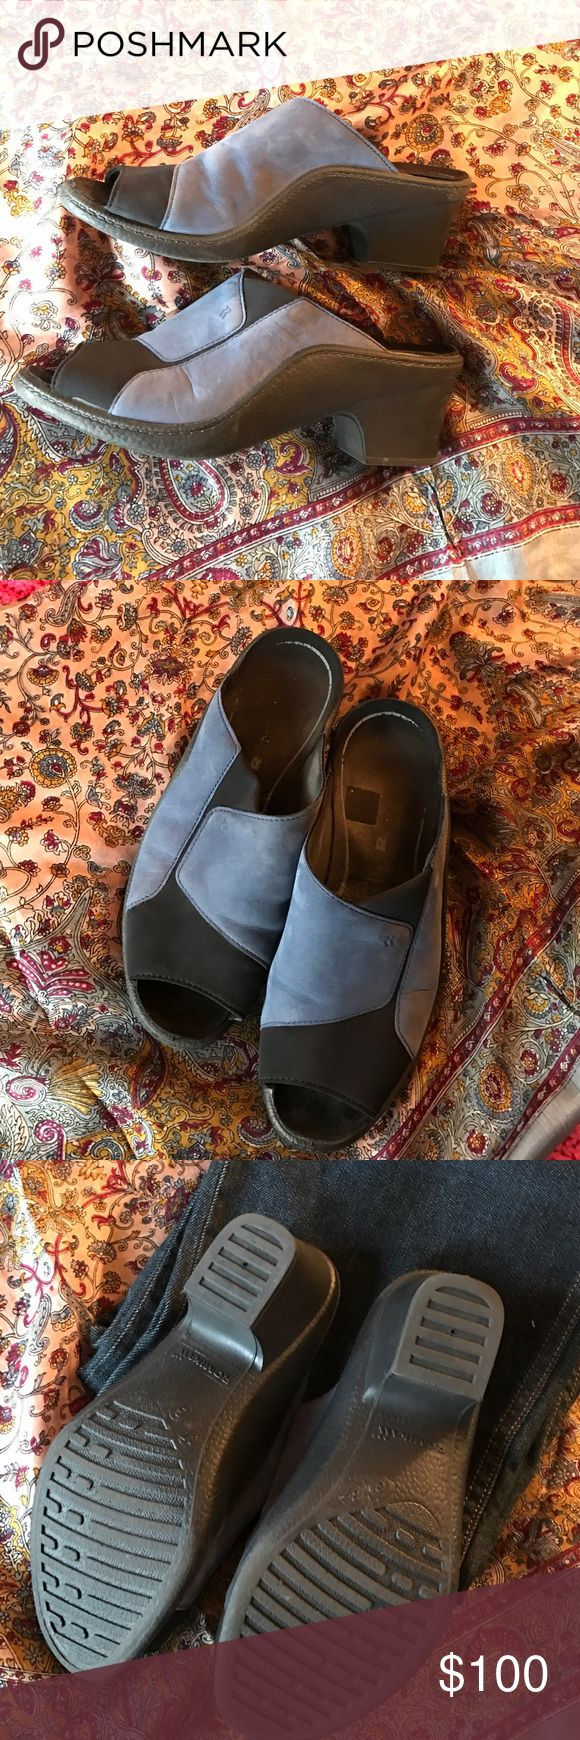 Blue suede shoes!!  Romika (EUR 37). Black and blue suede slides.  Romika (similar to Mephisto). Size 37 (US 7).  Very comfortable and supportive! Romika Shoes Mules & Clogs